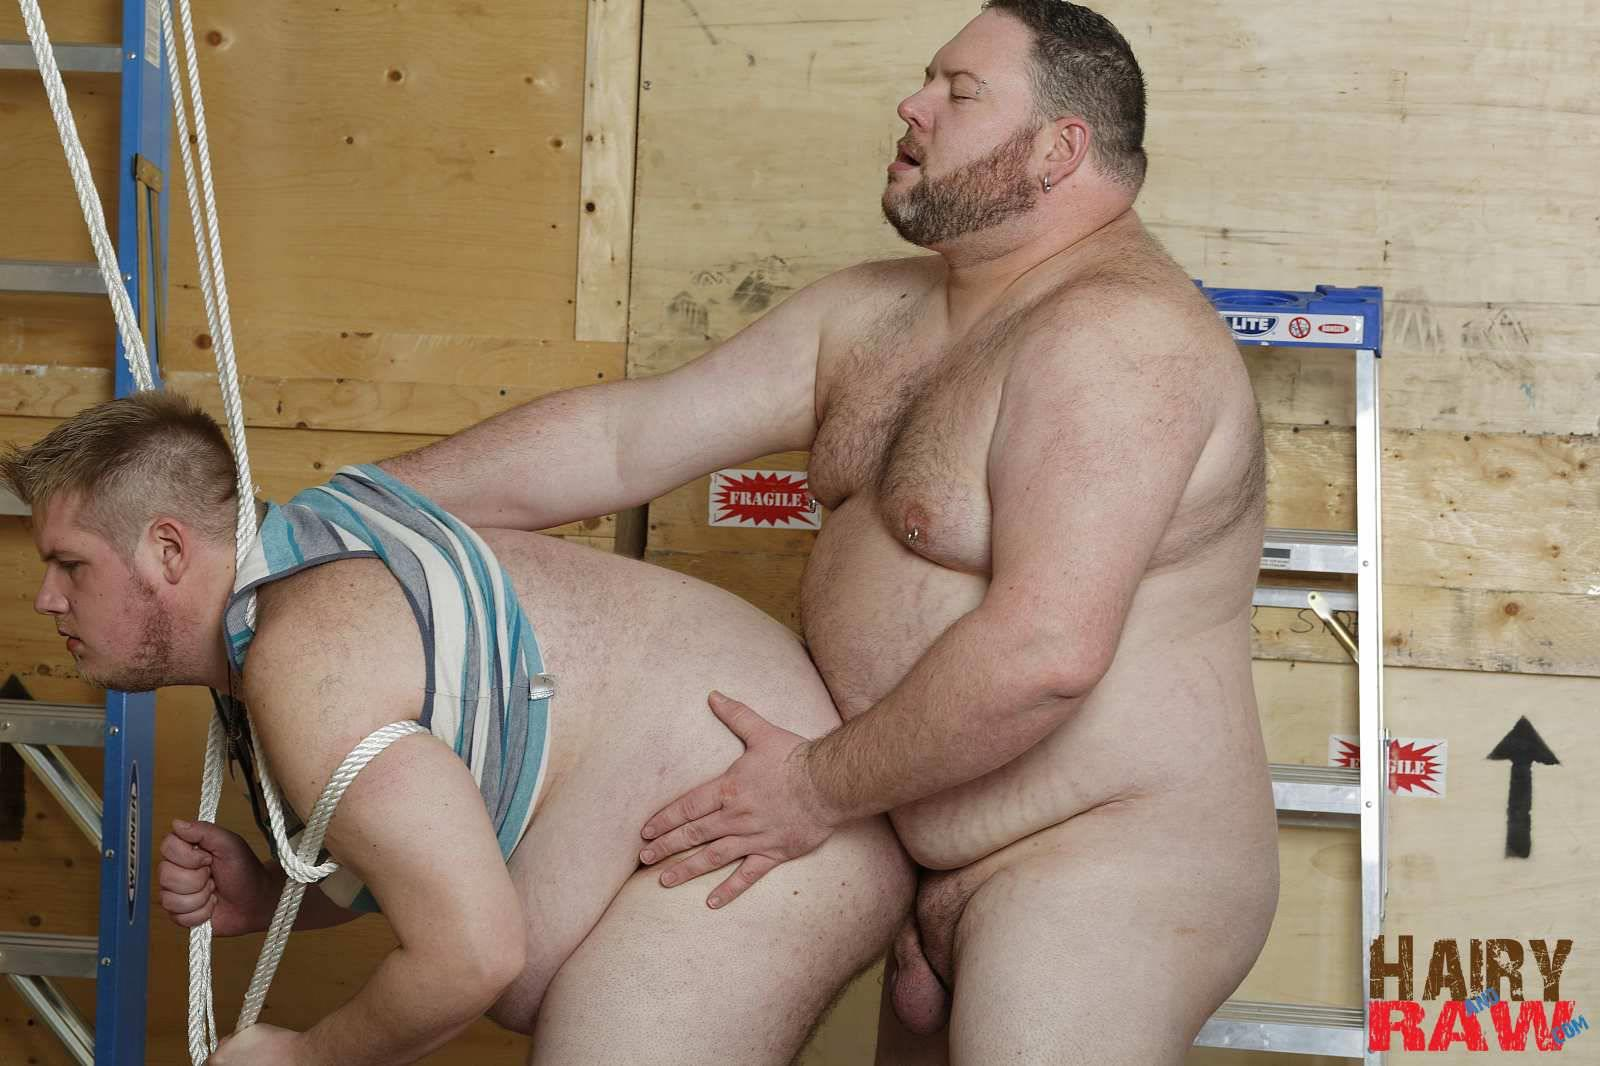 Hairy-and-Raw-Bear-Waters-and-Teddy-Osborne-Big-Hairy-Chubs-Fucking-Bareback-Amateur-Gay-Porn-09 Super Chubs Fucking Bareback At The Warehouse